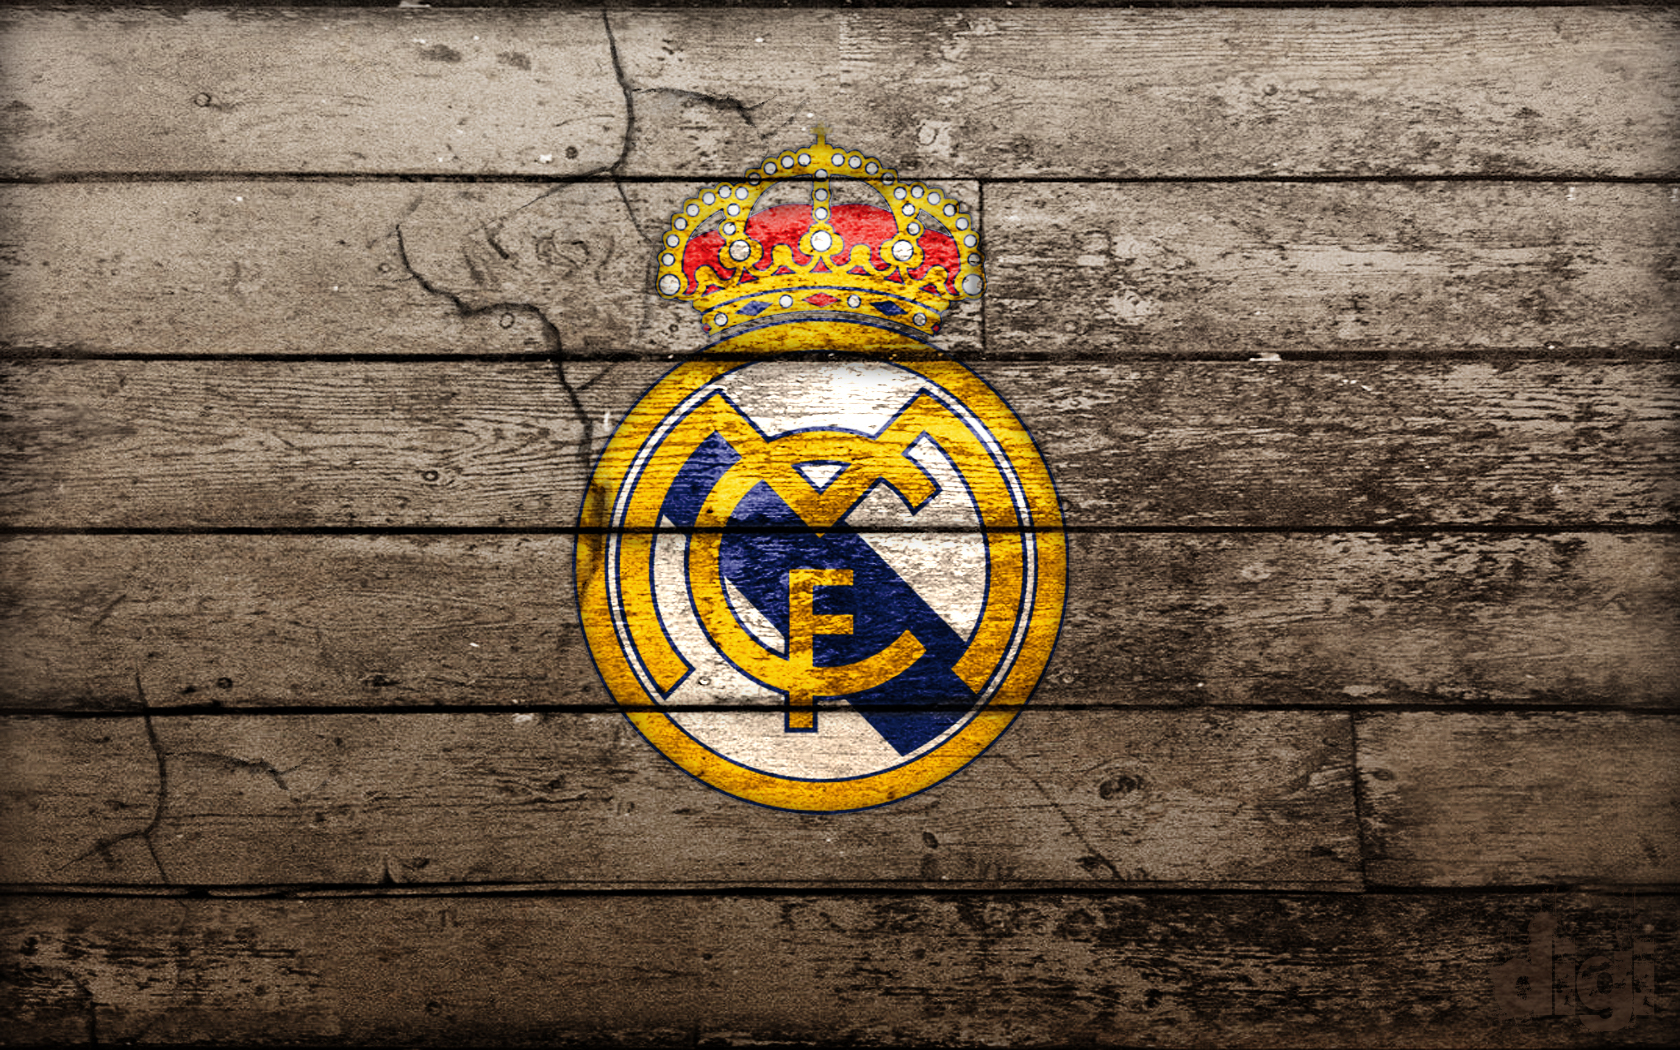 Real Madrid; Real Madrid; Real Madrid ...